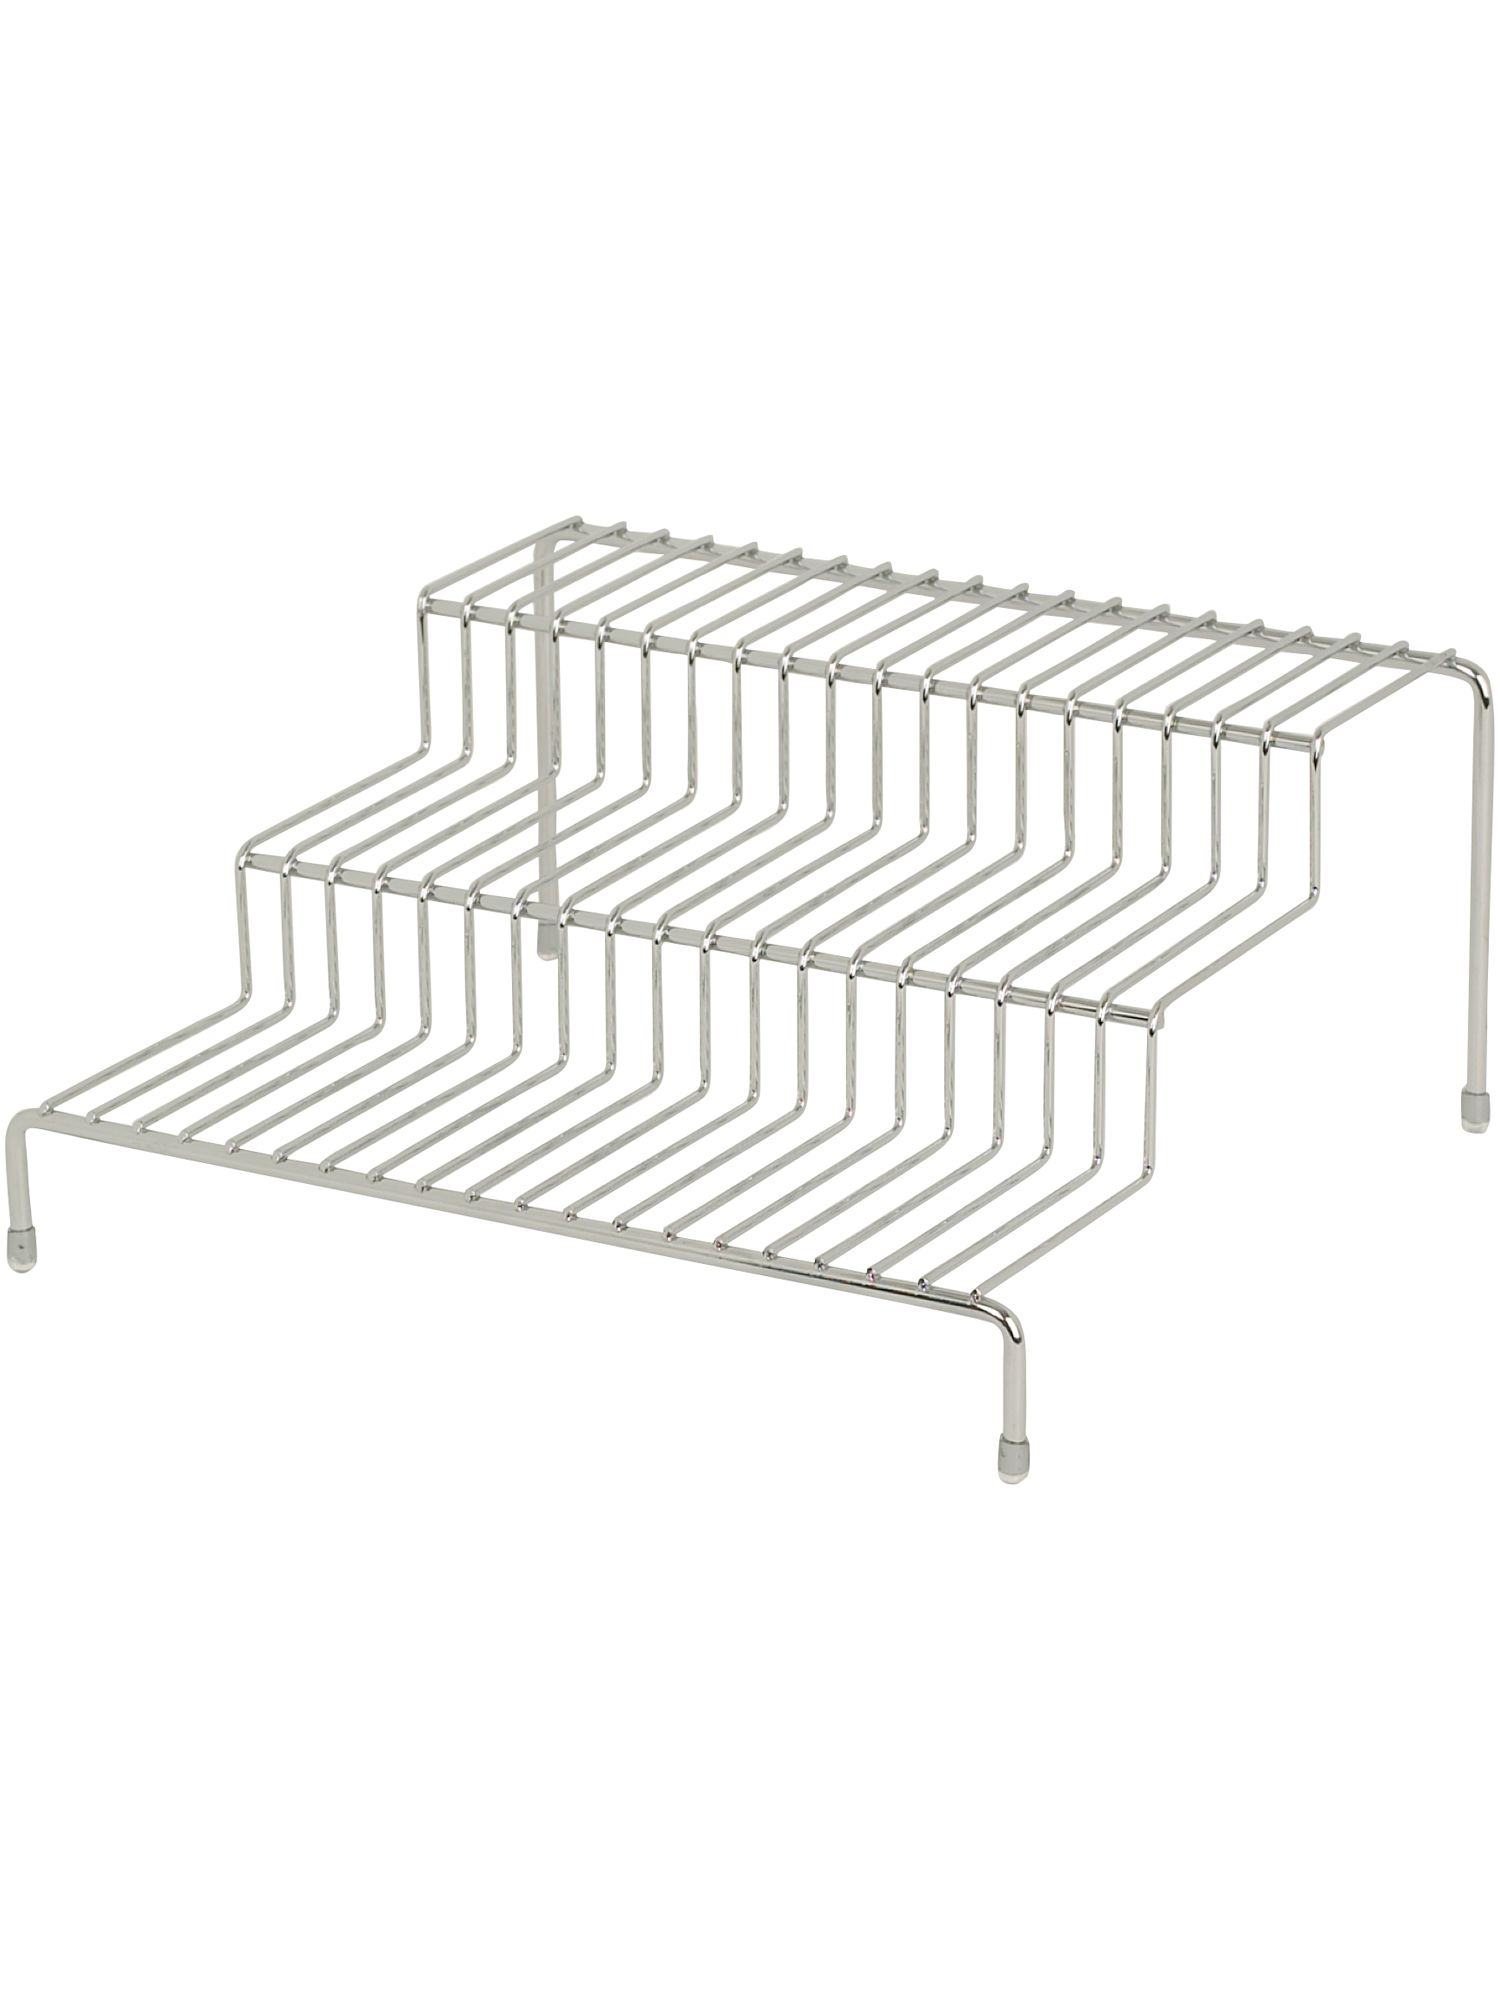 Linea Chrome 3 tier rack product image